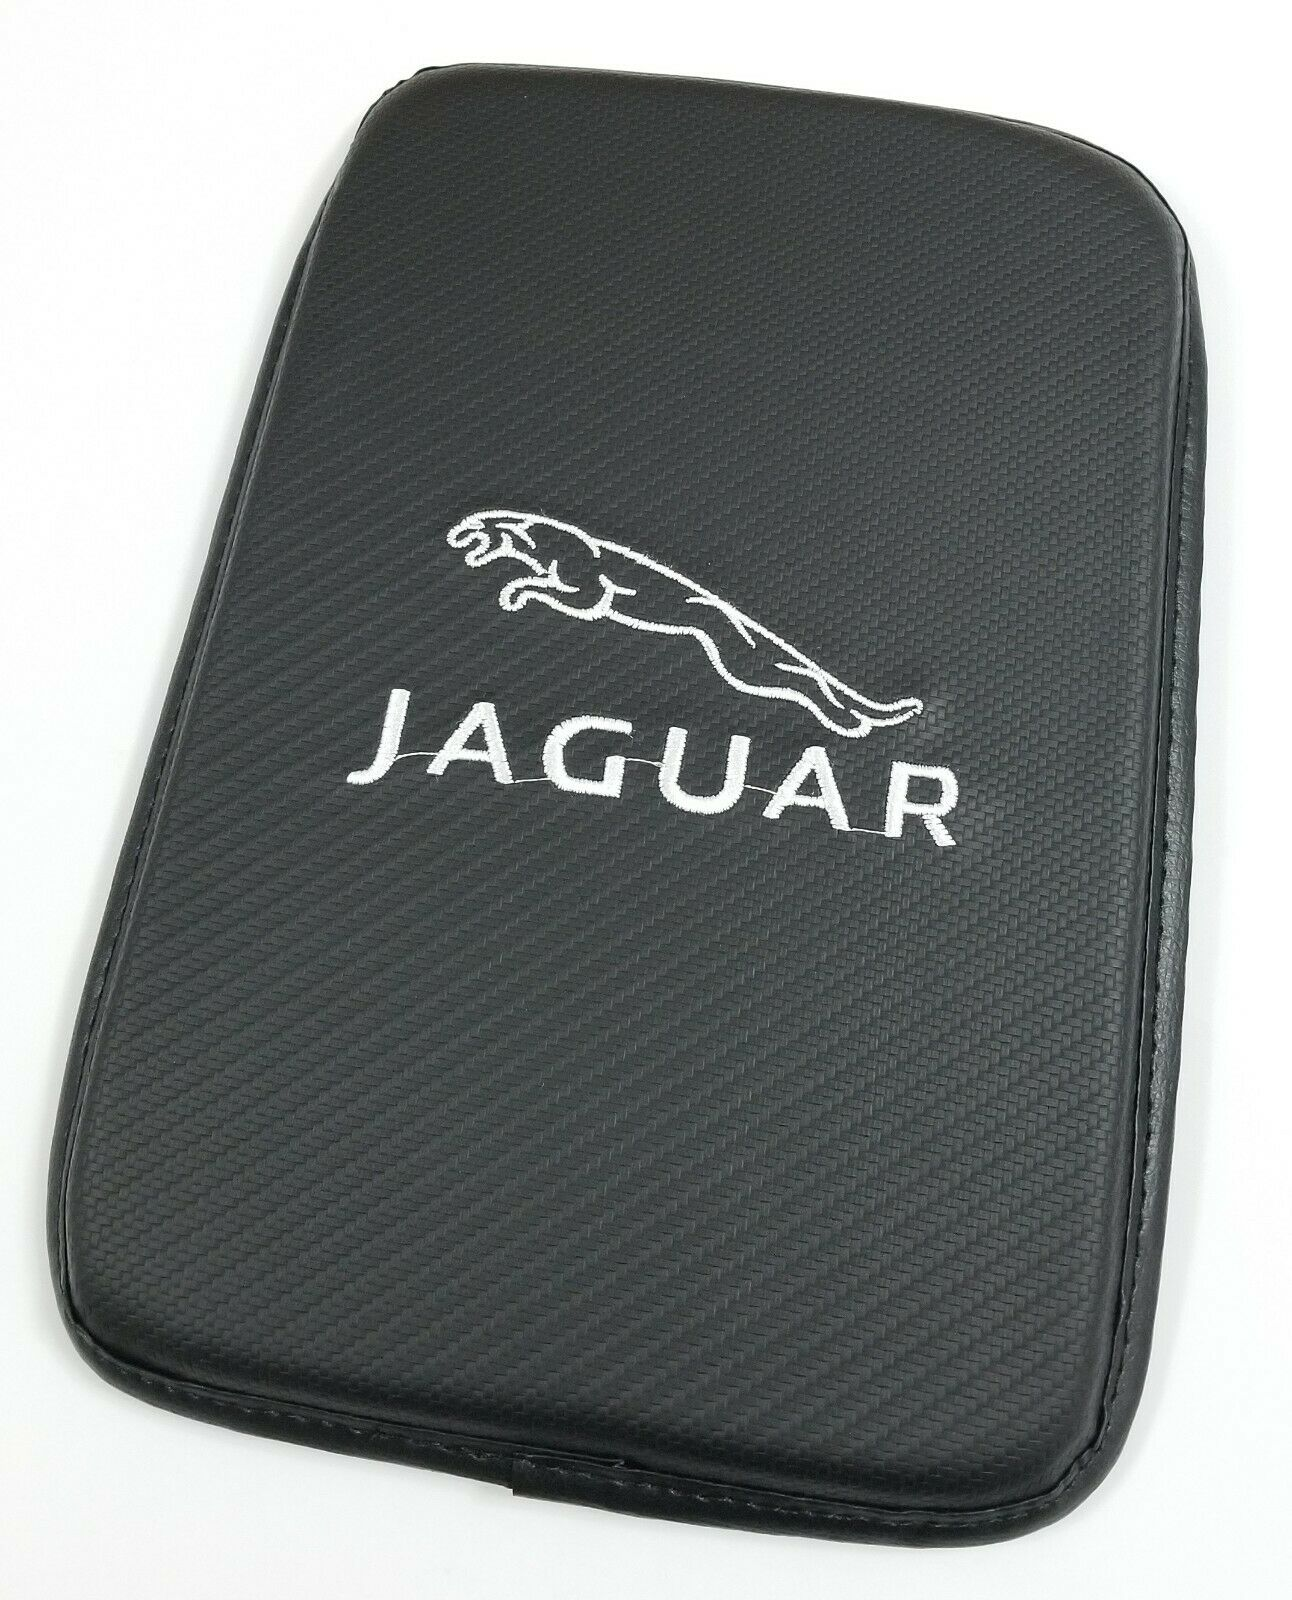 Car Parts - BRAND NEW JAGUAR Carbon Fiber Car Center Console Armrest Cushion Mat Pad Cover